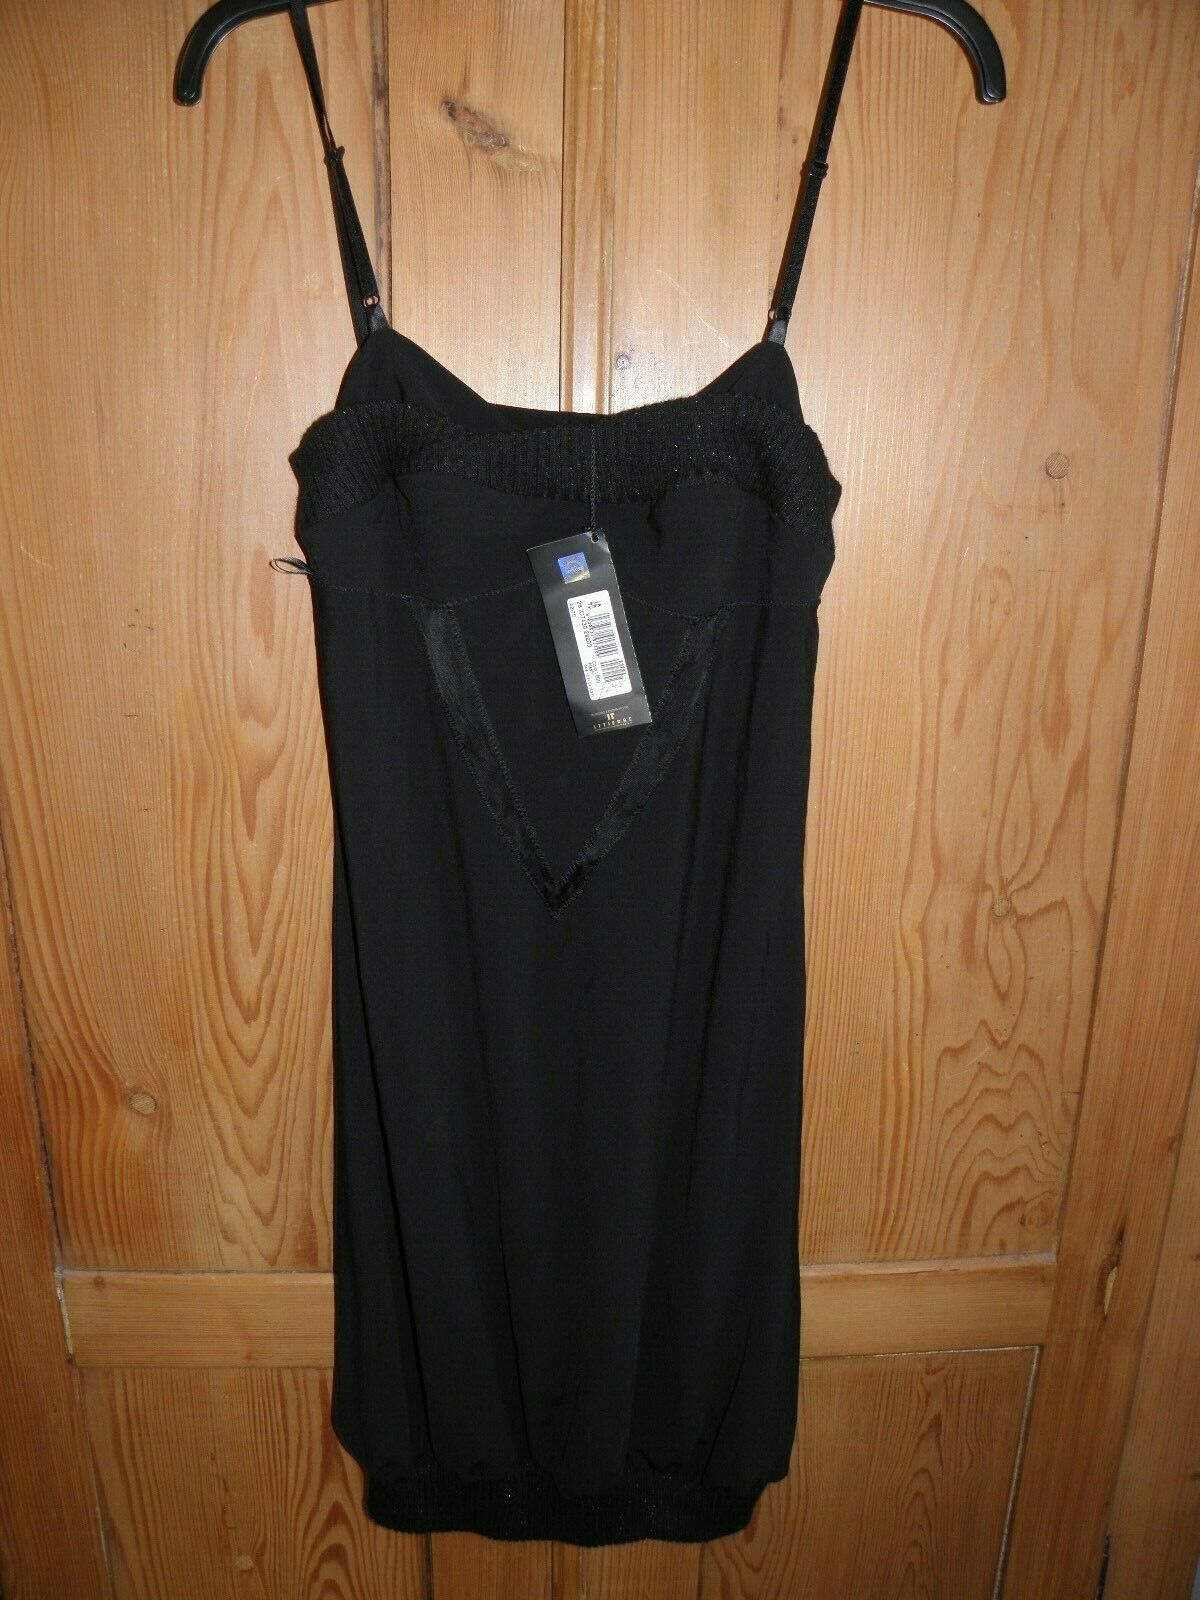 Just Cavalli BNWT strappy schwarz dress, Größe 46 (12 )